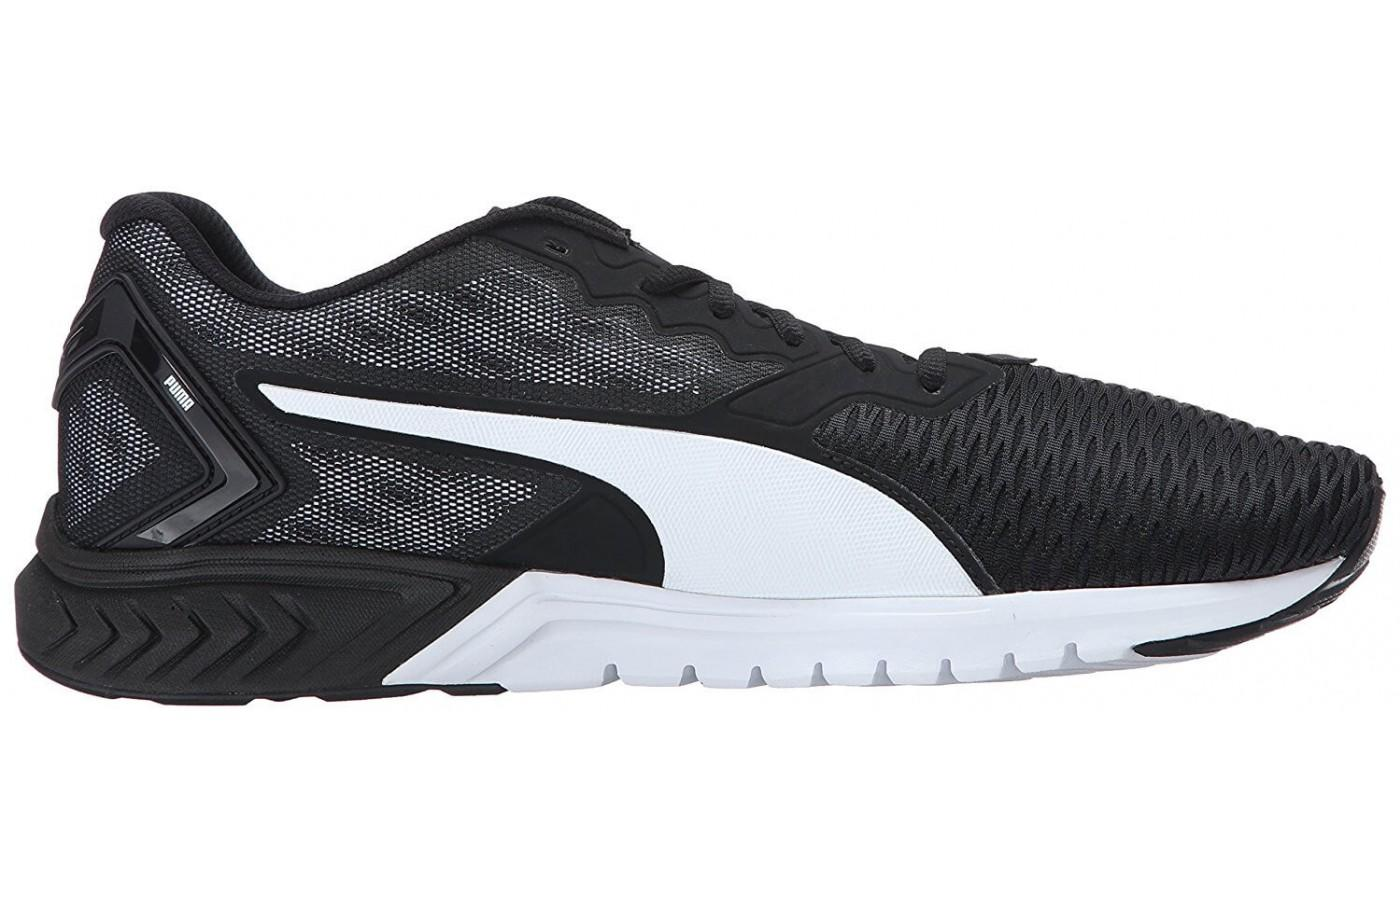 the Puma Ignite Dual to the right